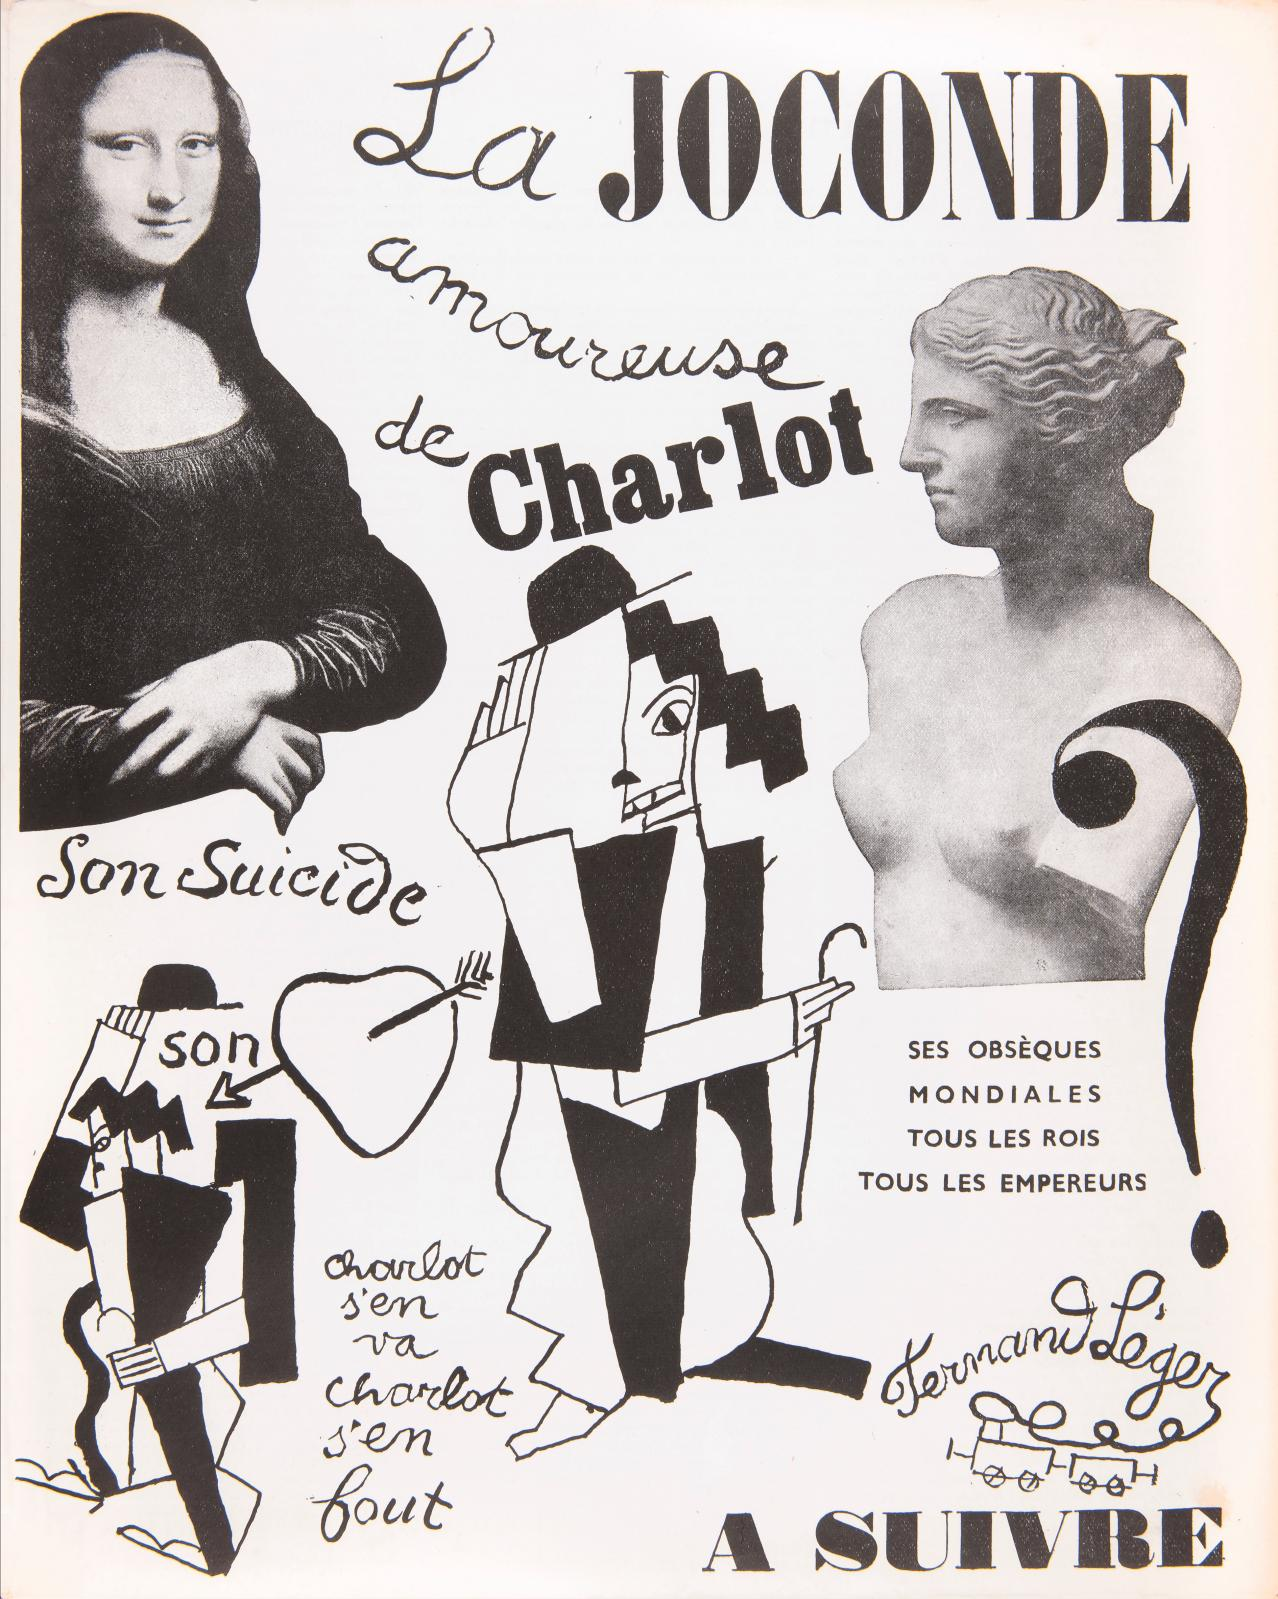 Fernand Léger (1881-1955), La Joconde amoureuse de Charlot, in 14 Rue du Dragon no 1, mars 1933.